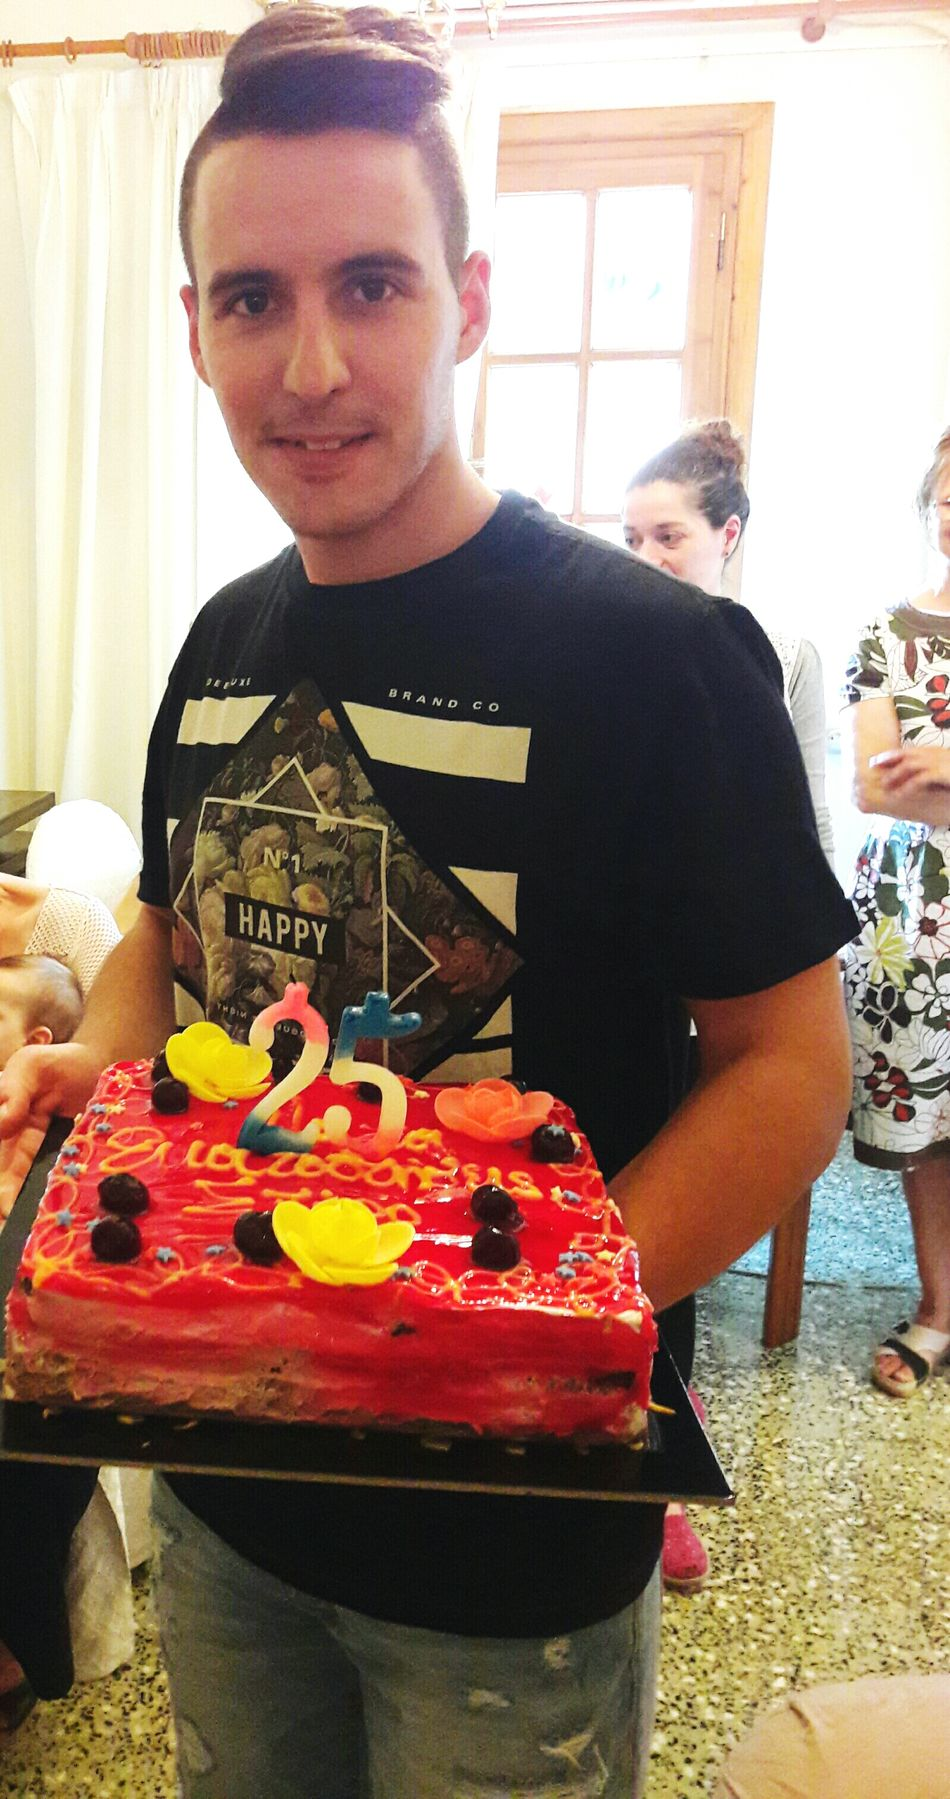 Birthday Birthday Cake Birthday Party 25YearsOld 25years 1991 Thats Me  Itsmybirthday ONLY LOVE Friends Love Young Happy Hello World